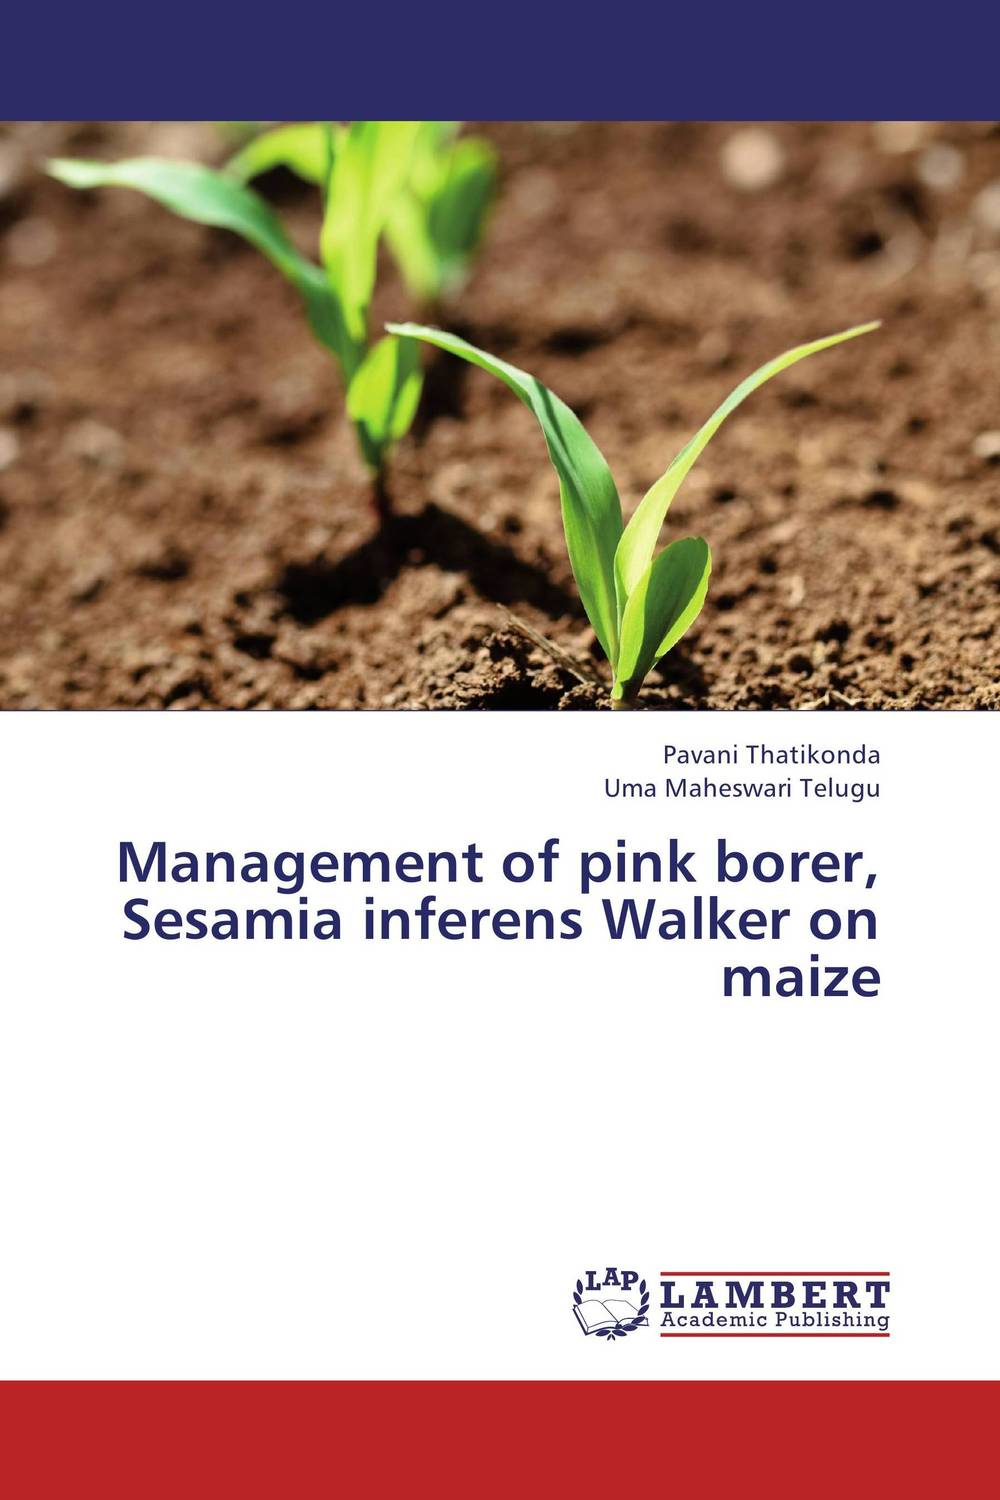 Management of pink borer, Sesamia inferens Walker on maize on the distribution of information structures and focal points